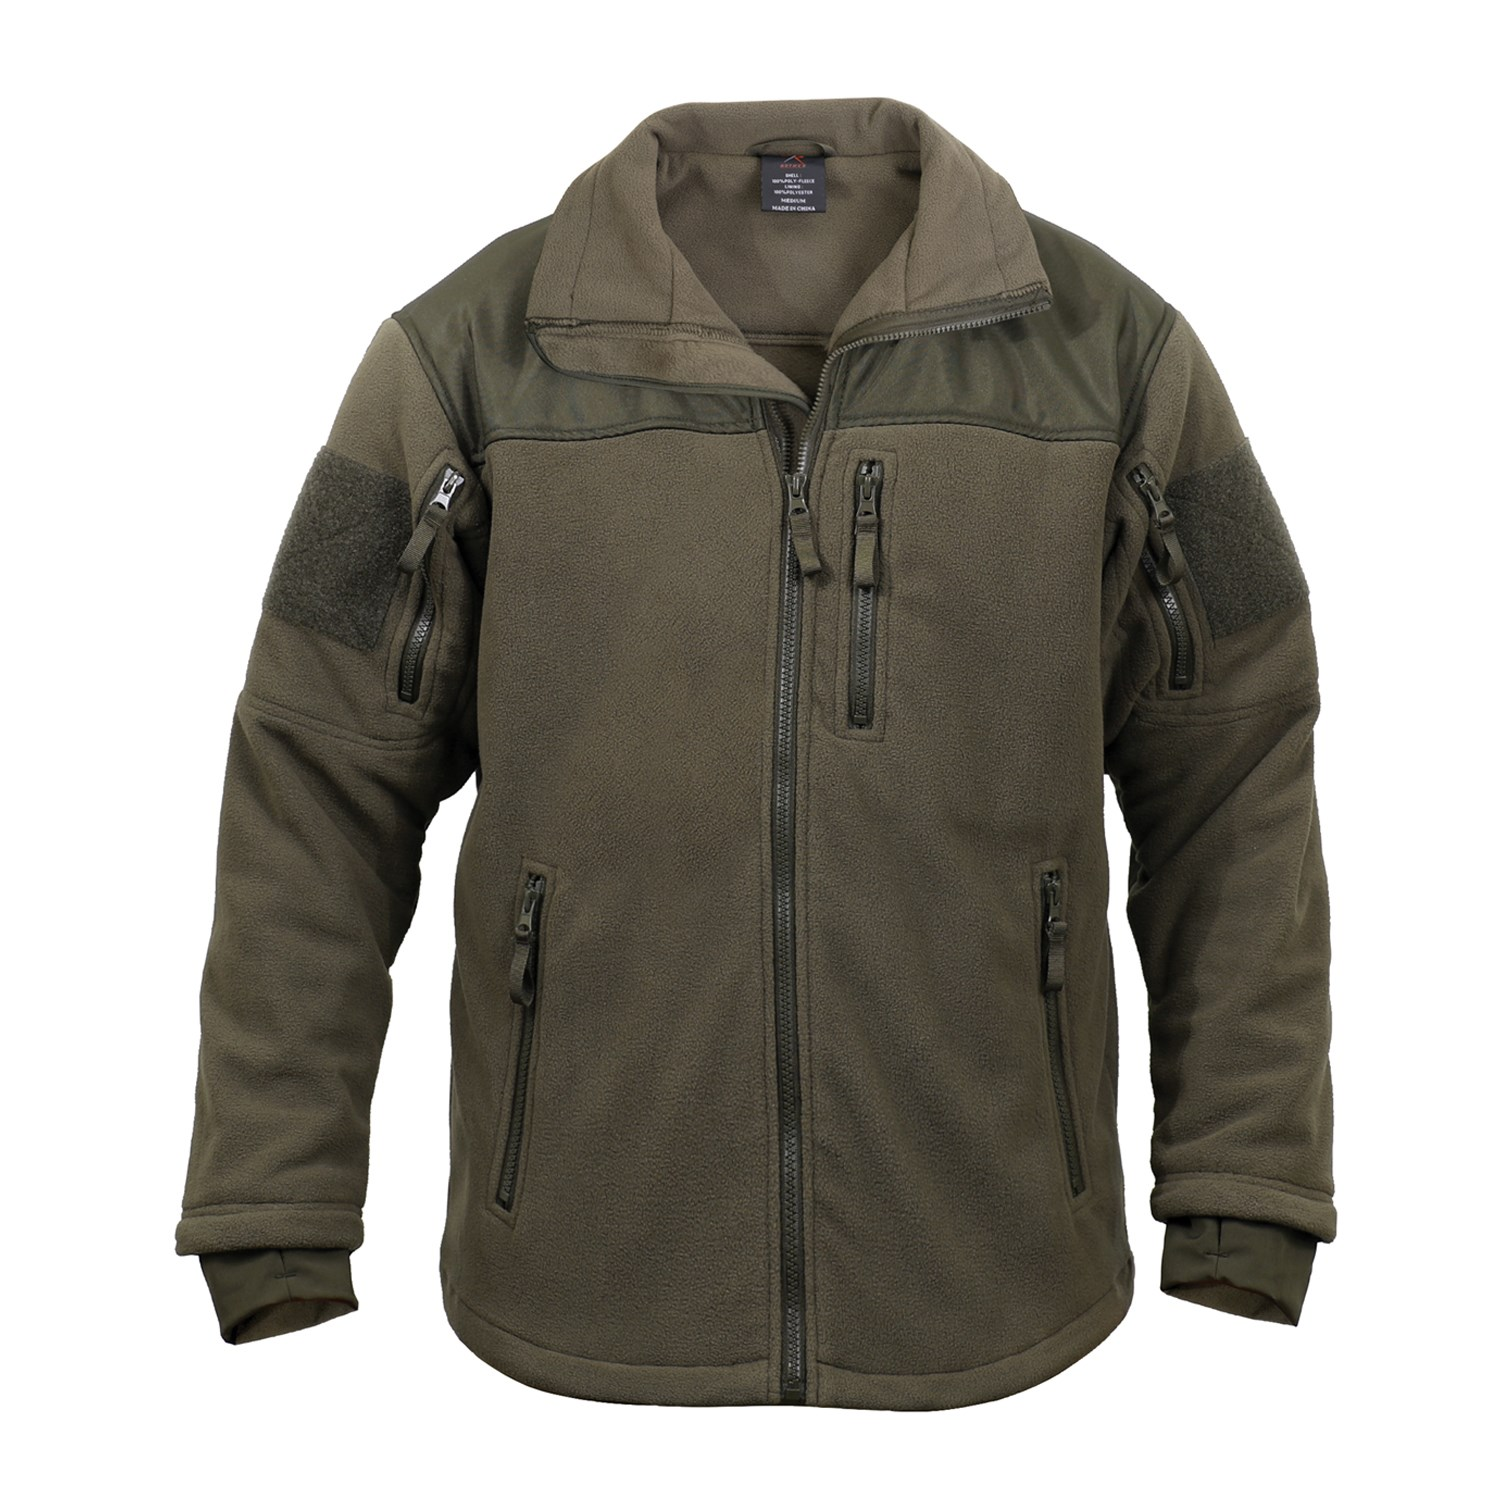 Bunda SPEC OPS fleece ZELENÁ ROTHCO 96675 L-11